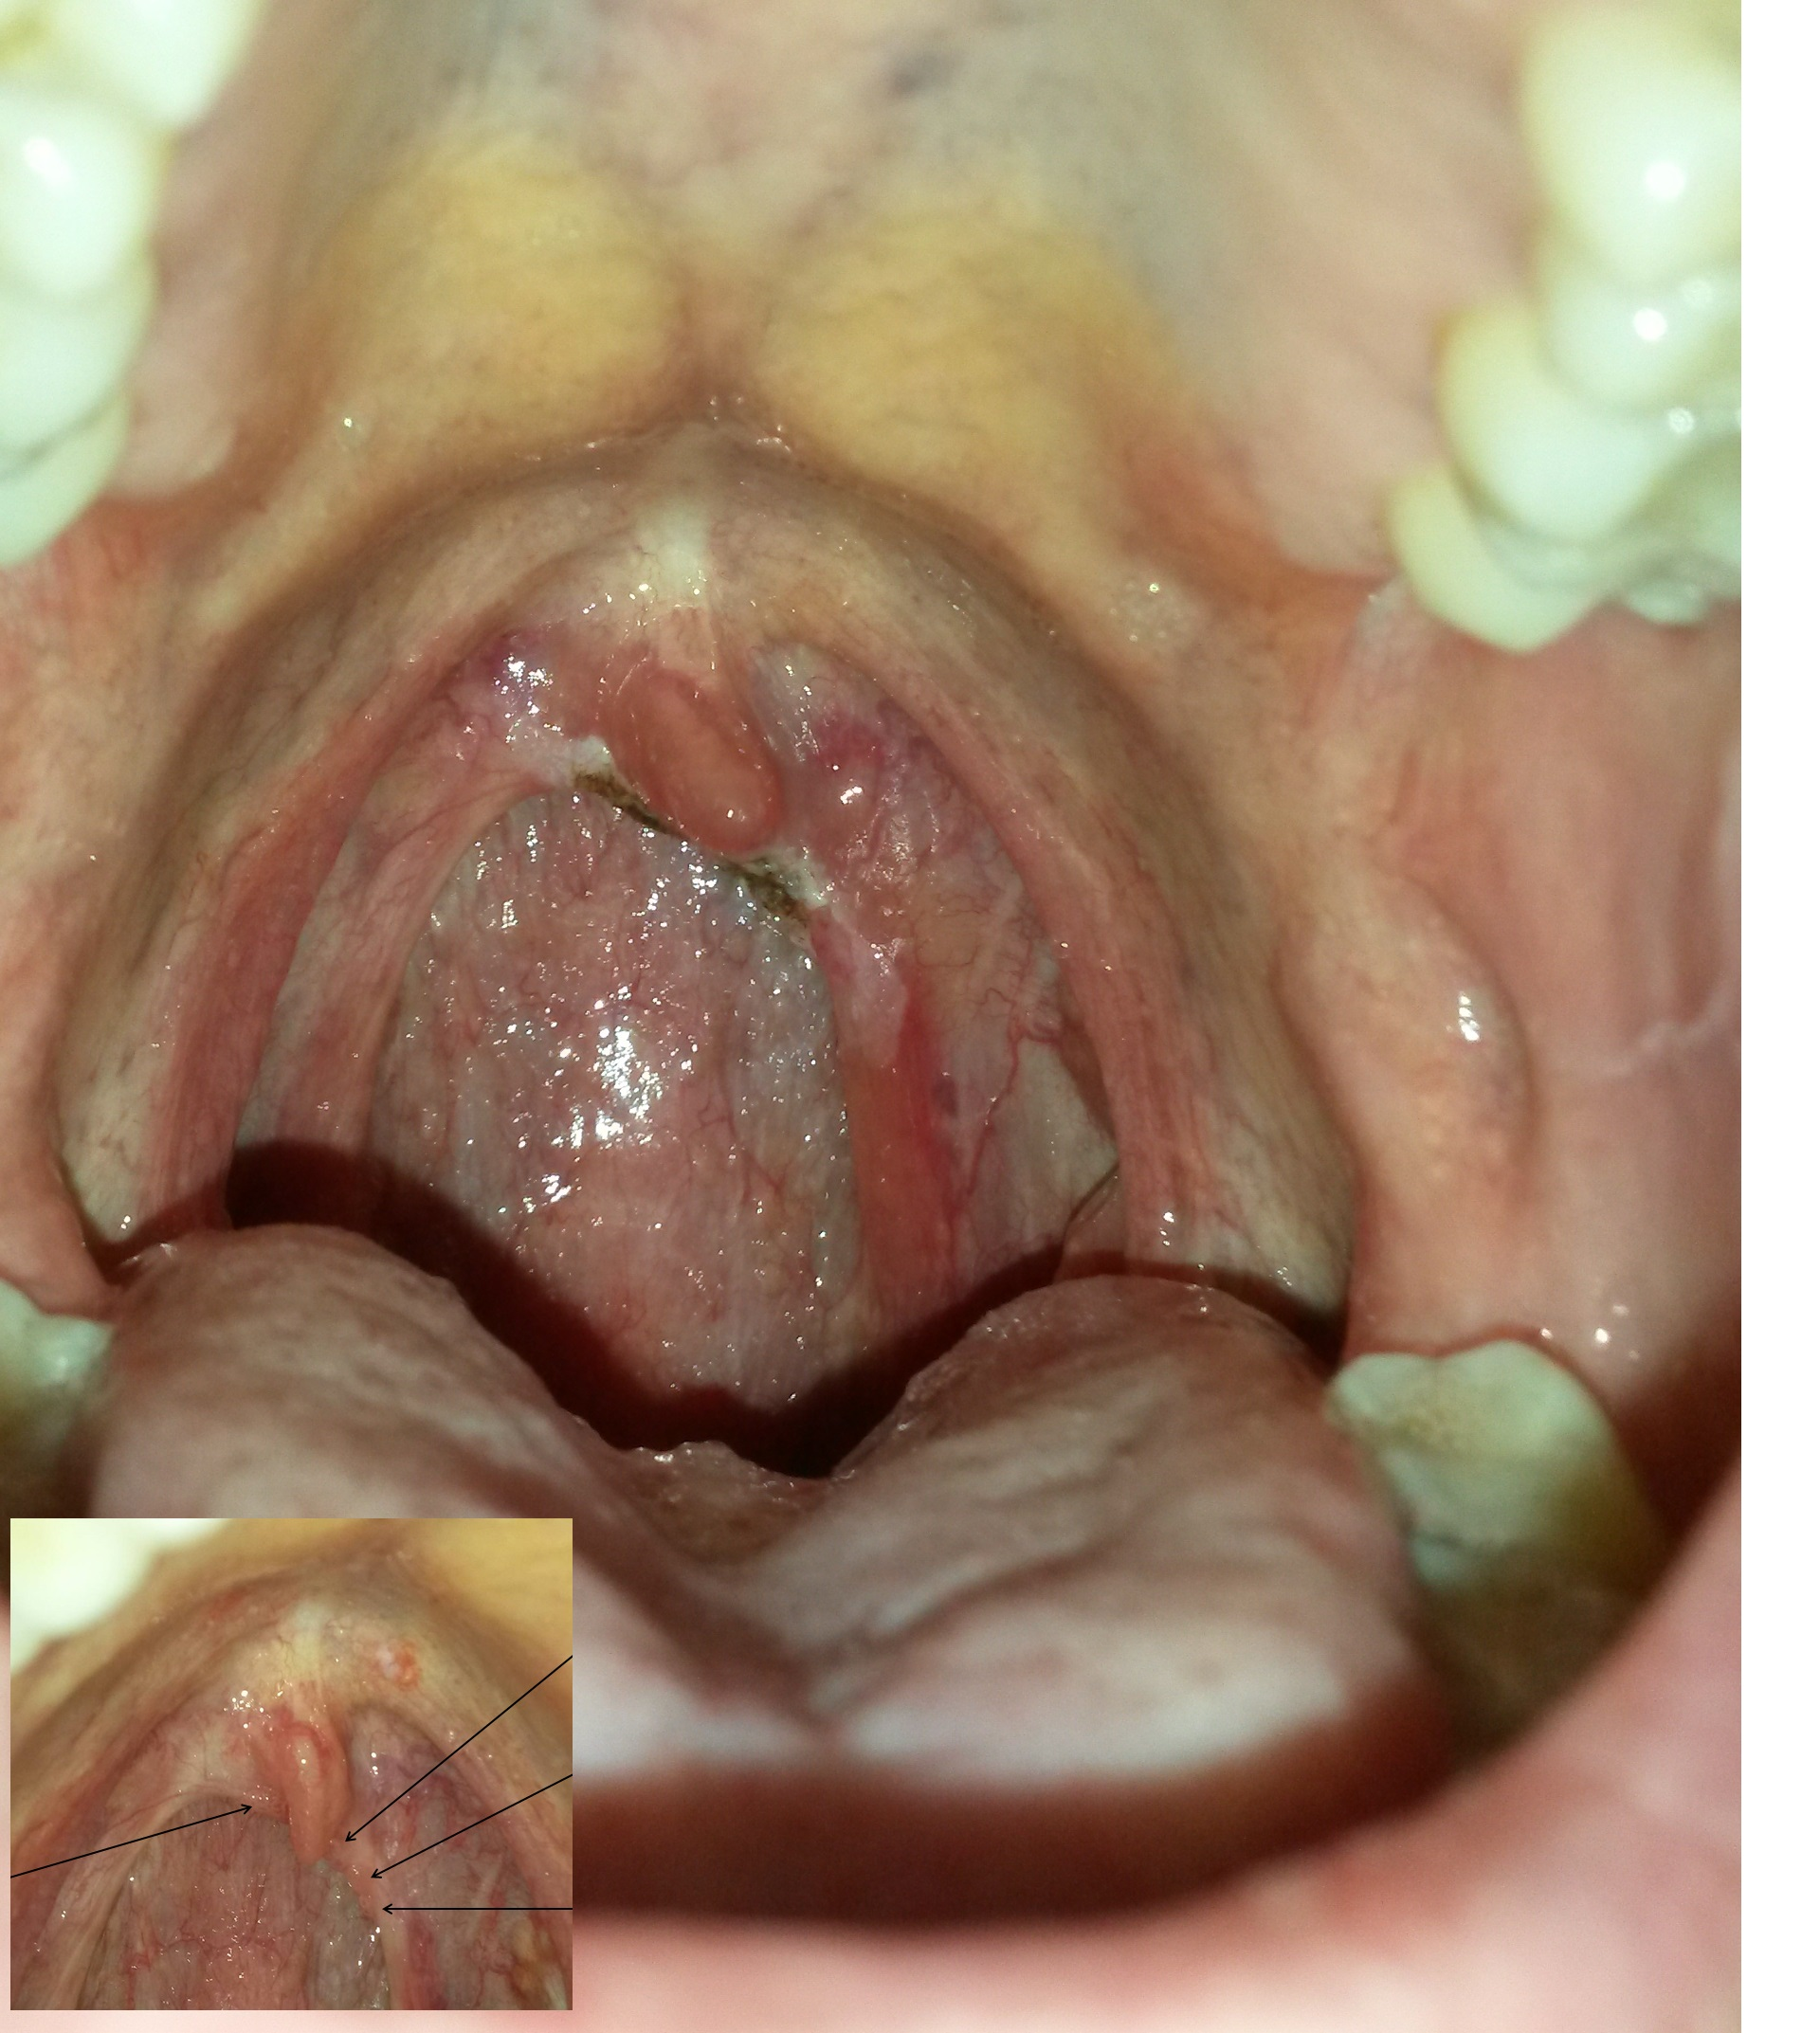 papillomavirus associated warts)